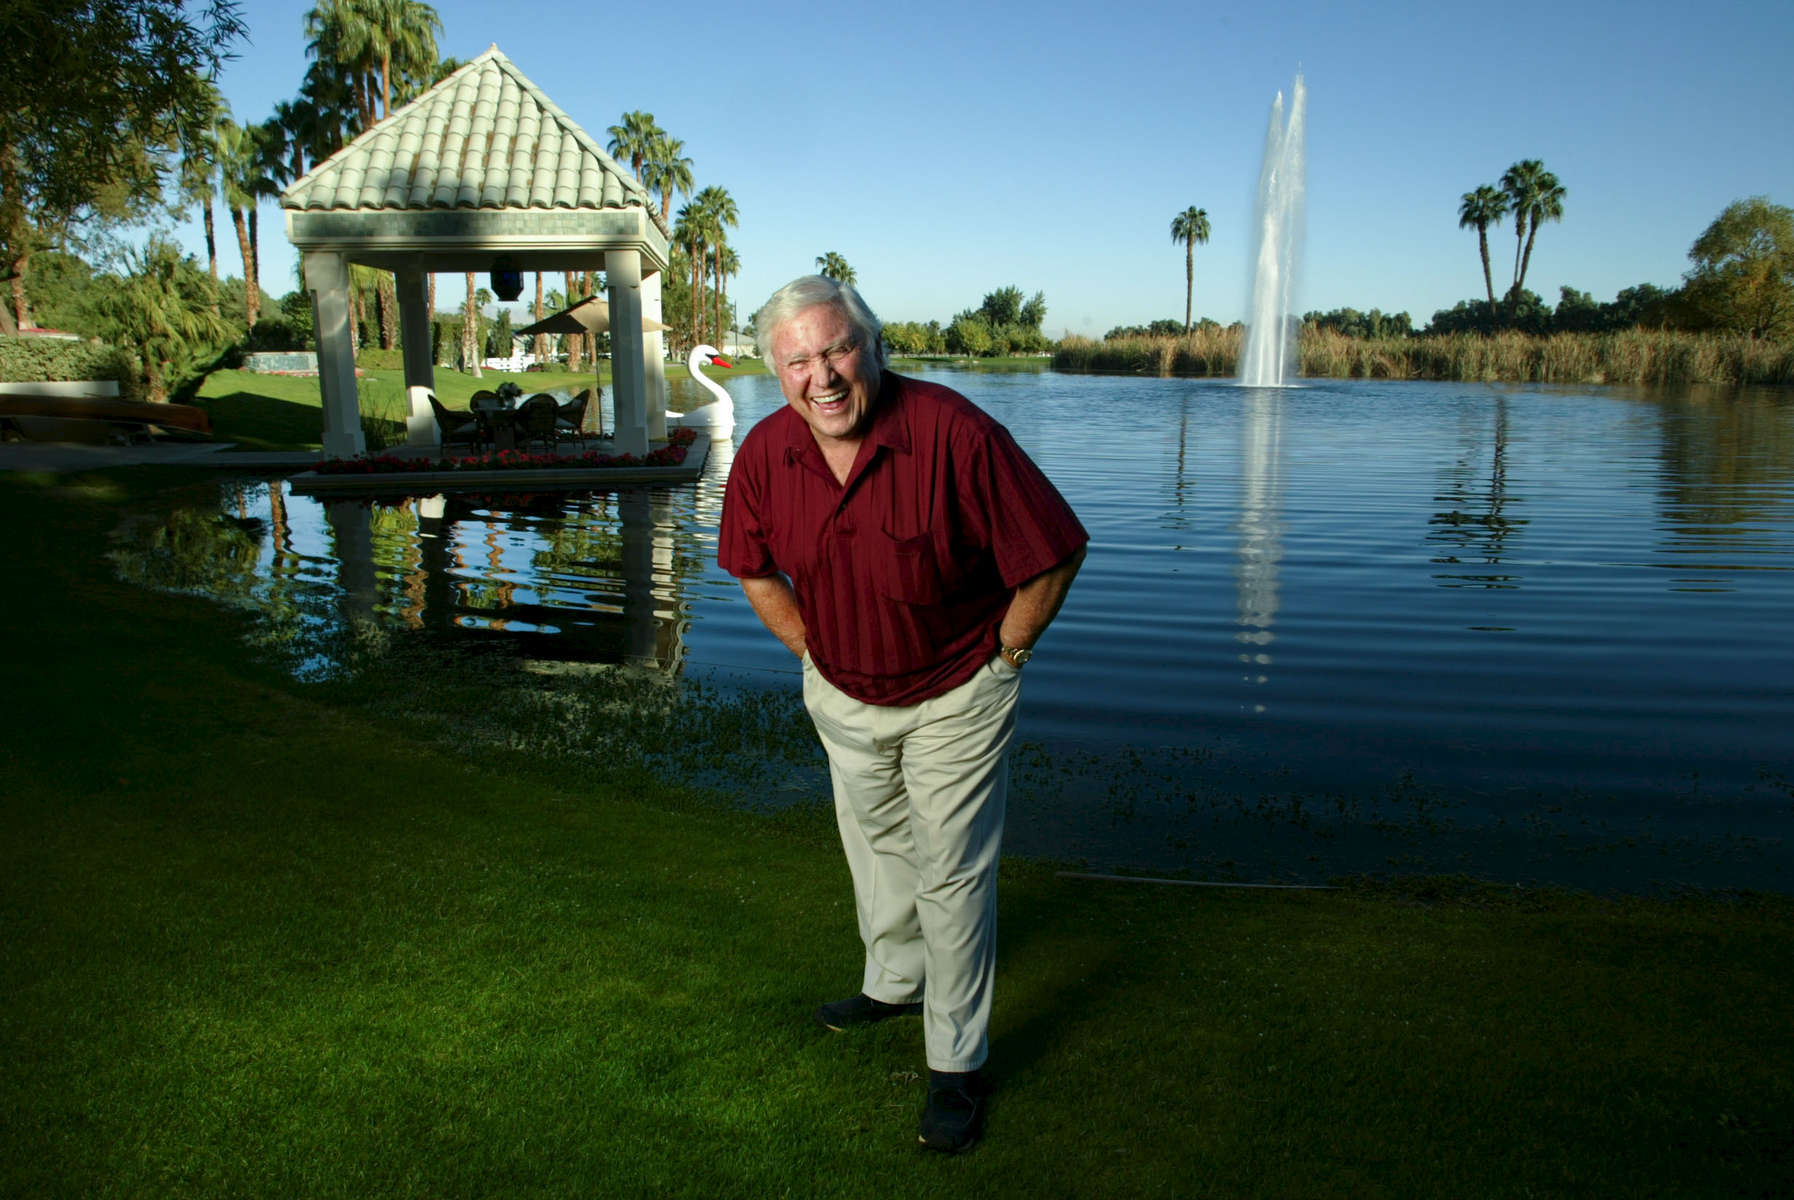 Picture © STEWART COOK   1-30-03  (310) 877 9155Merv Griffin at his Palm Springs ranch complete with lake and stables where he keeps his thorobread racing horses. Pictured with dog Charlie.